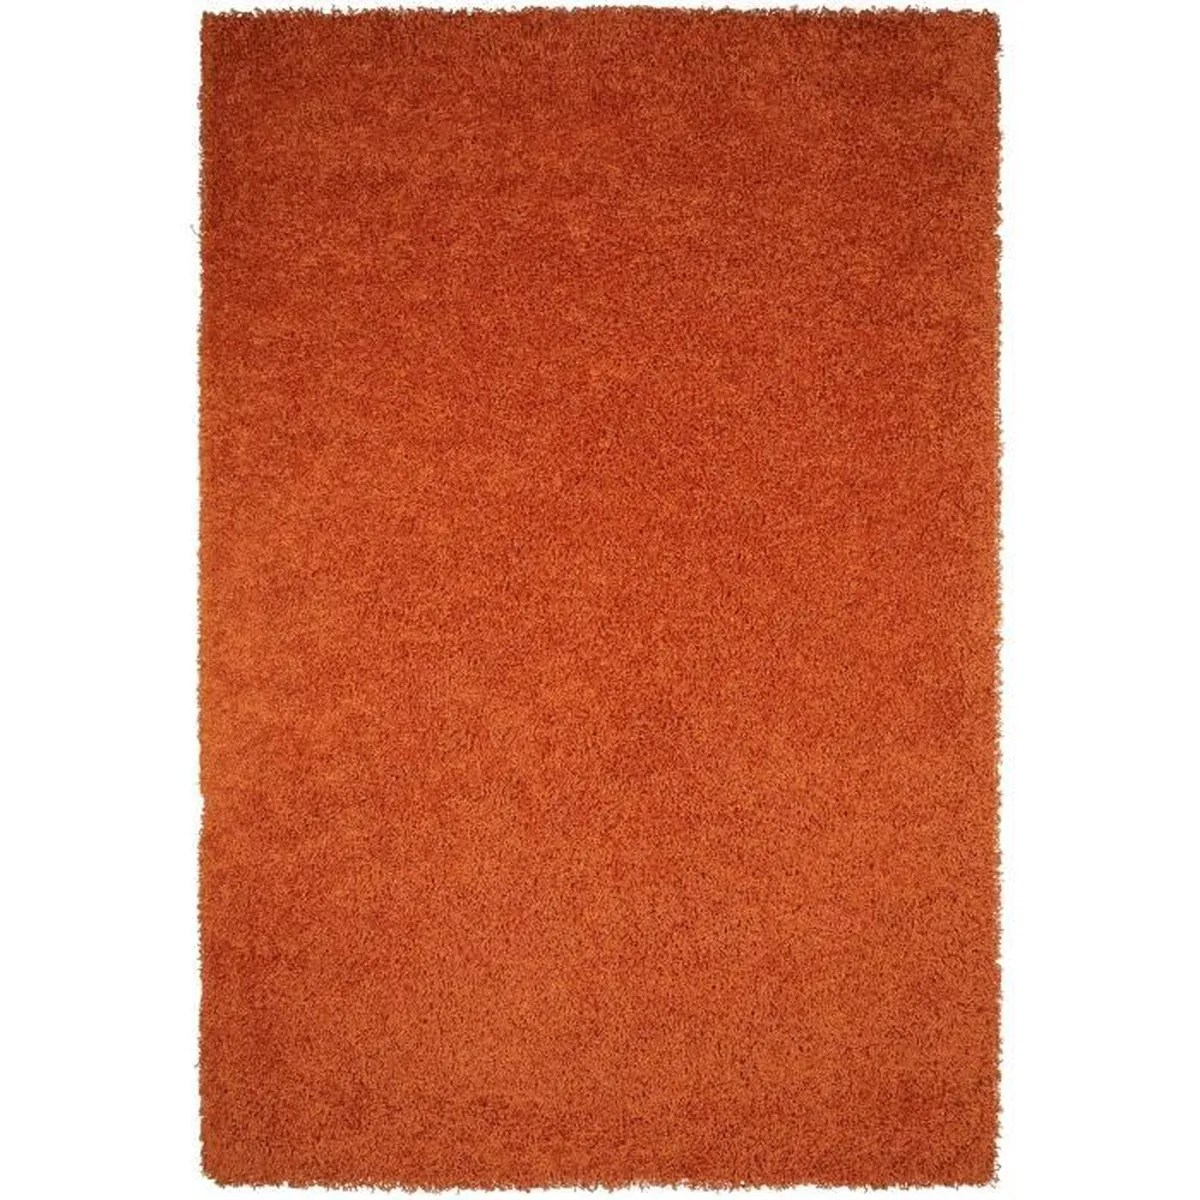 Tapis Shaggy Orange Tapis Shaggy à Poils Longs Cambria Orange 80x150 Cm Tapis